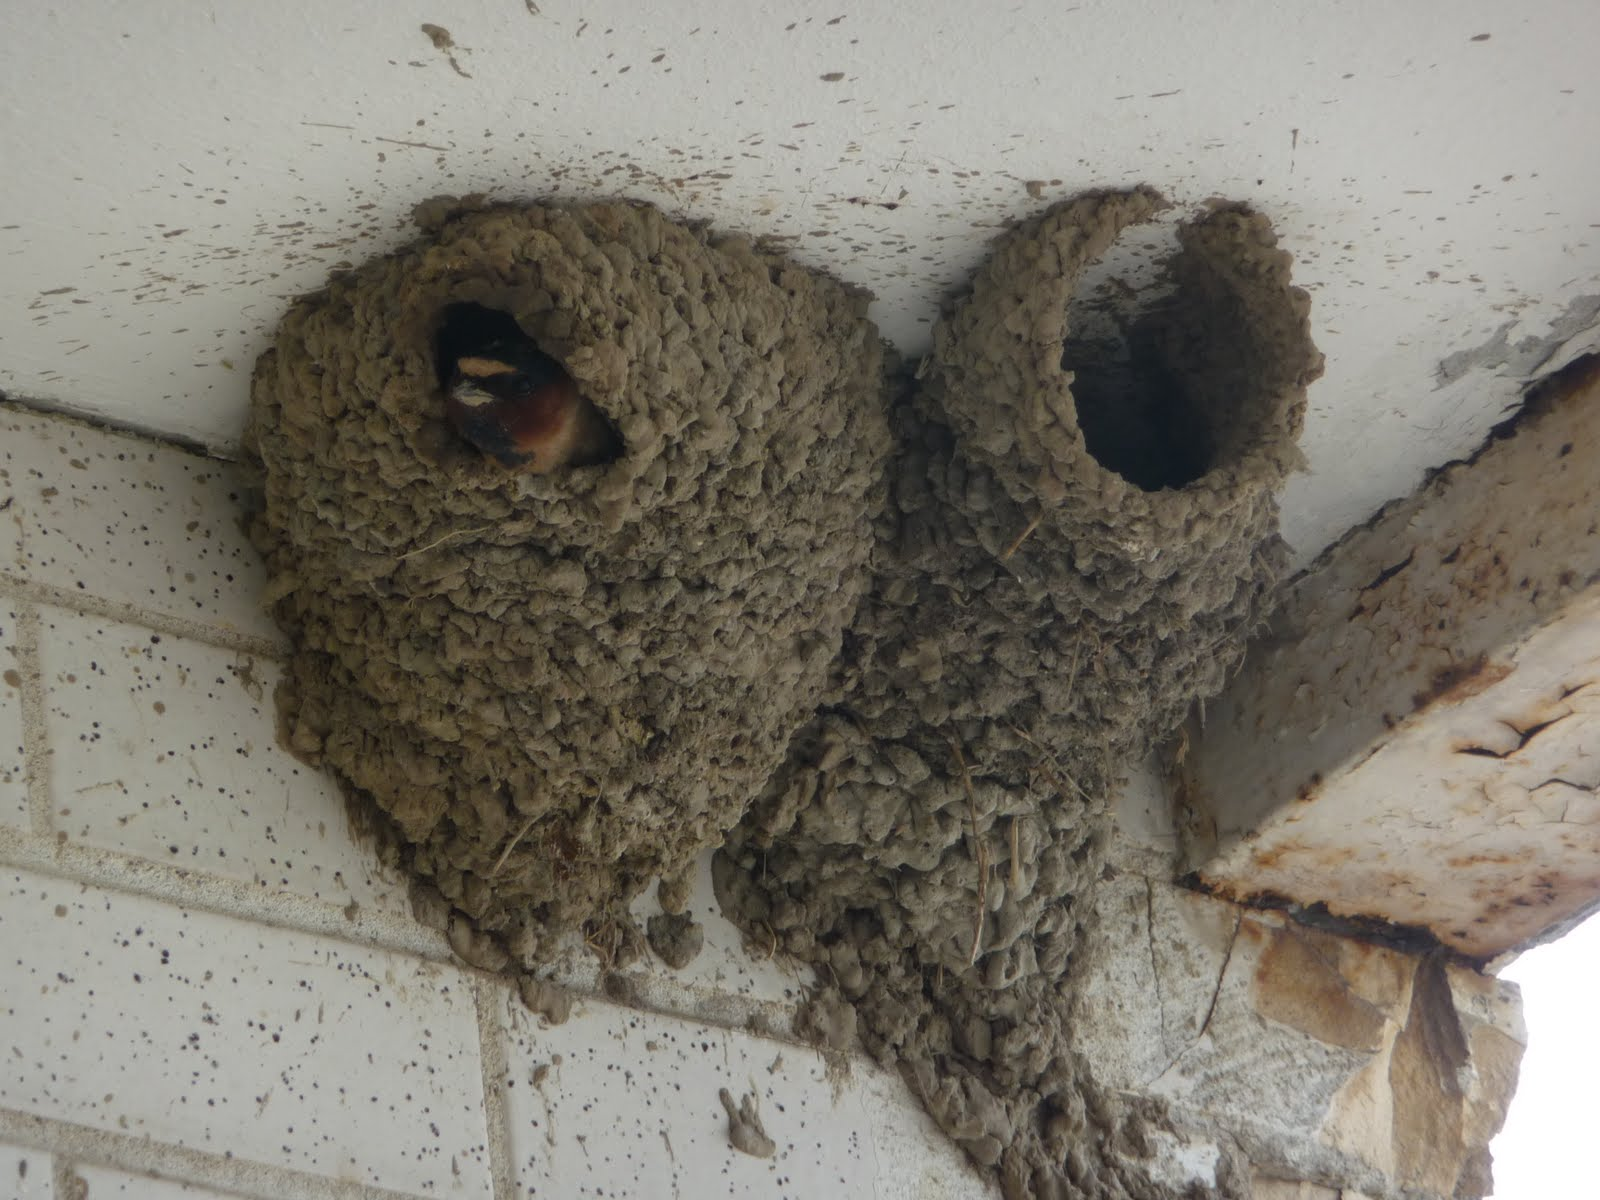 Mud Swallow Nests 86